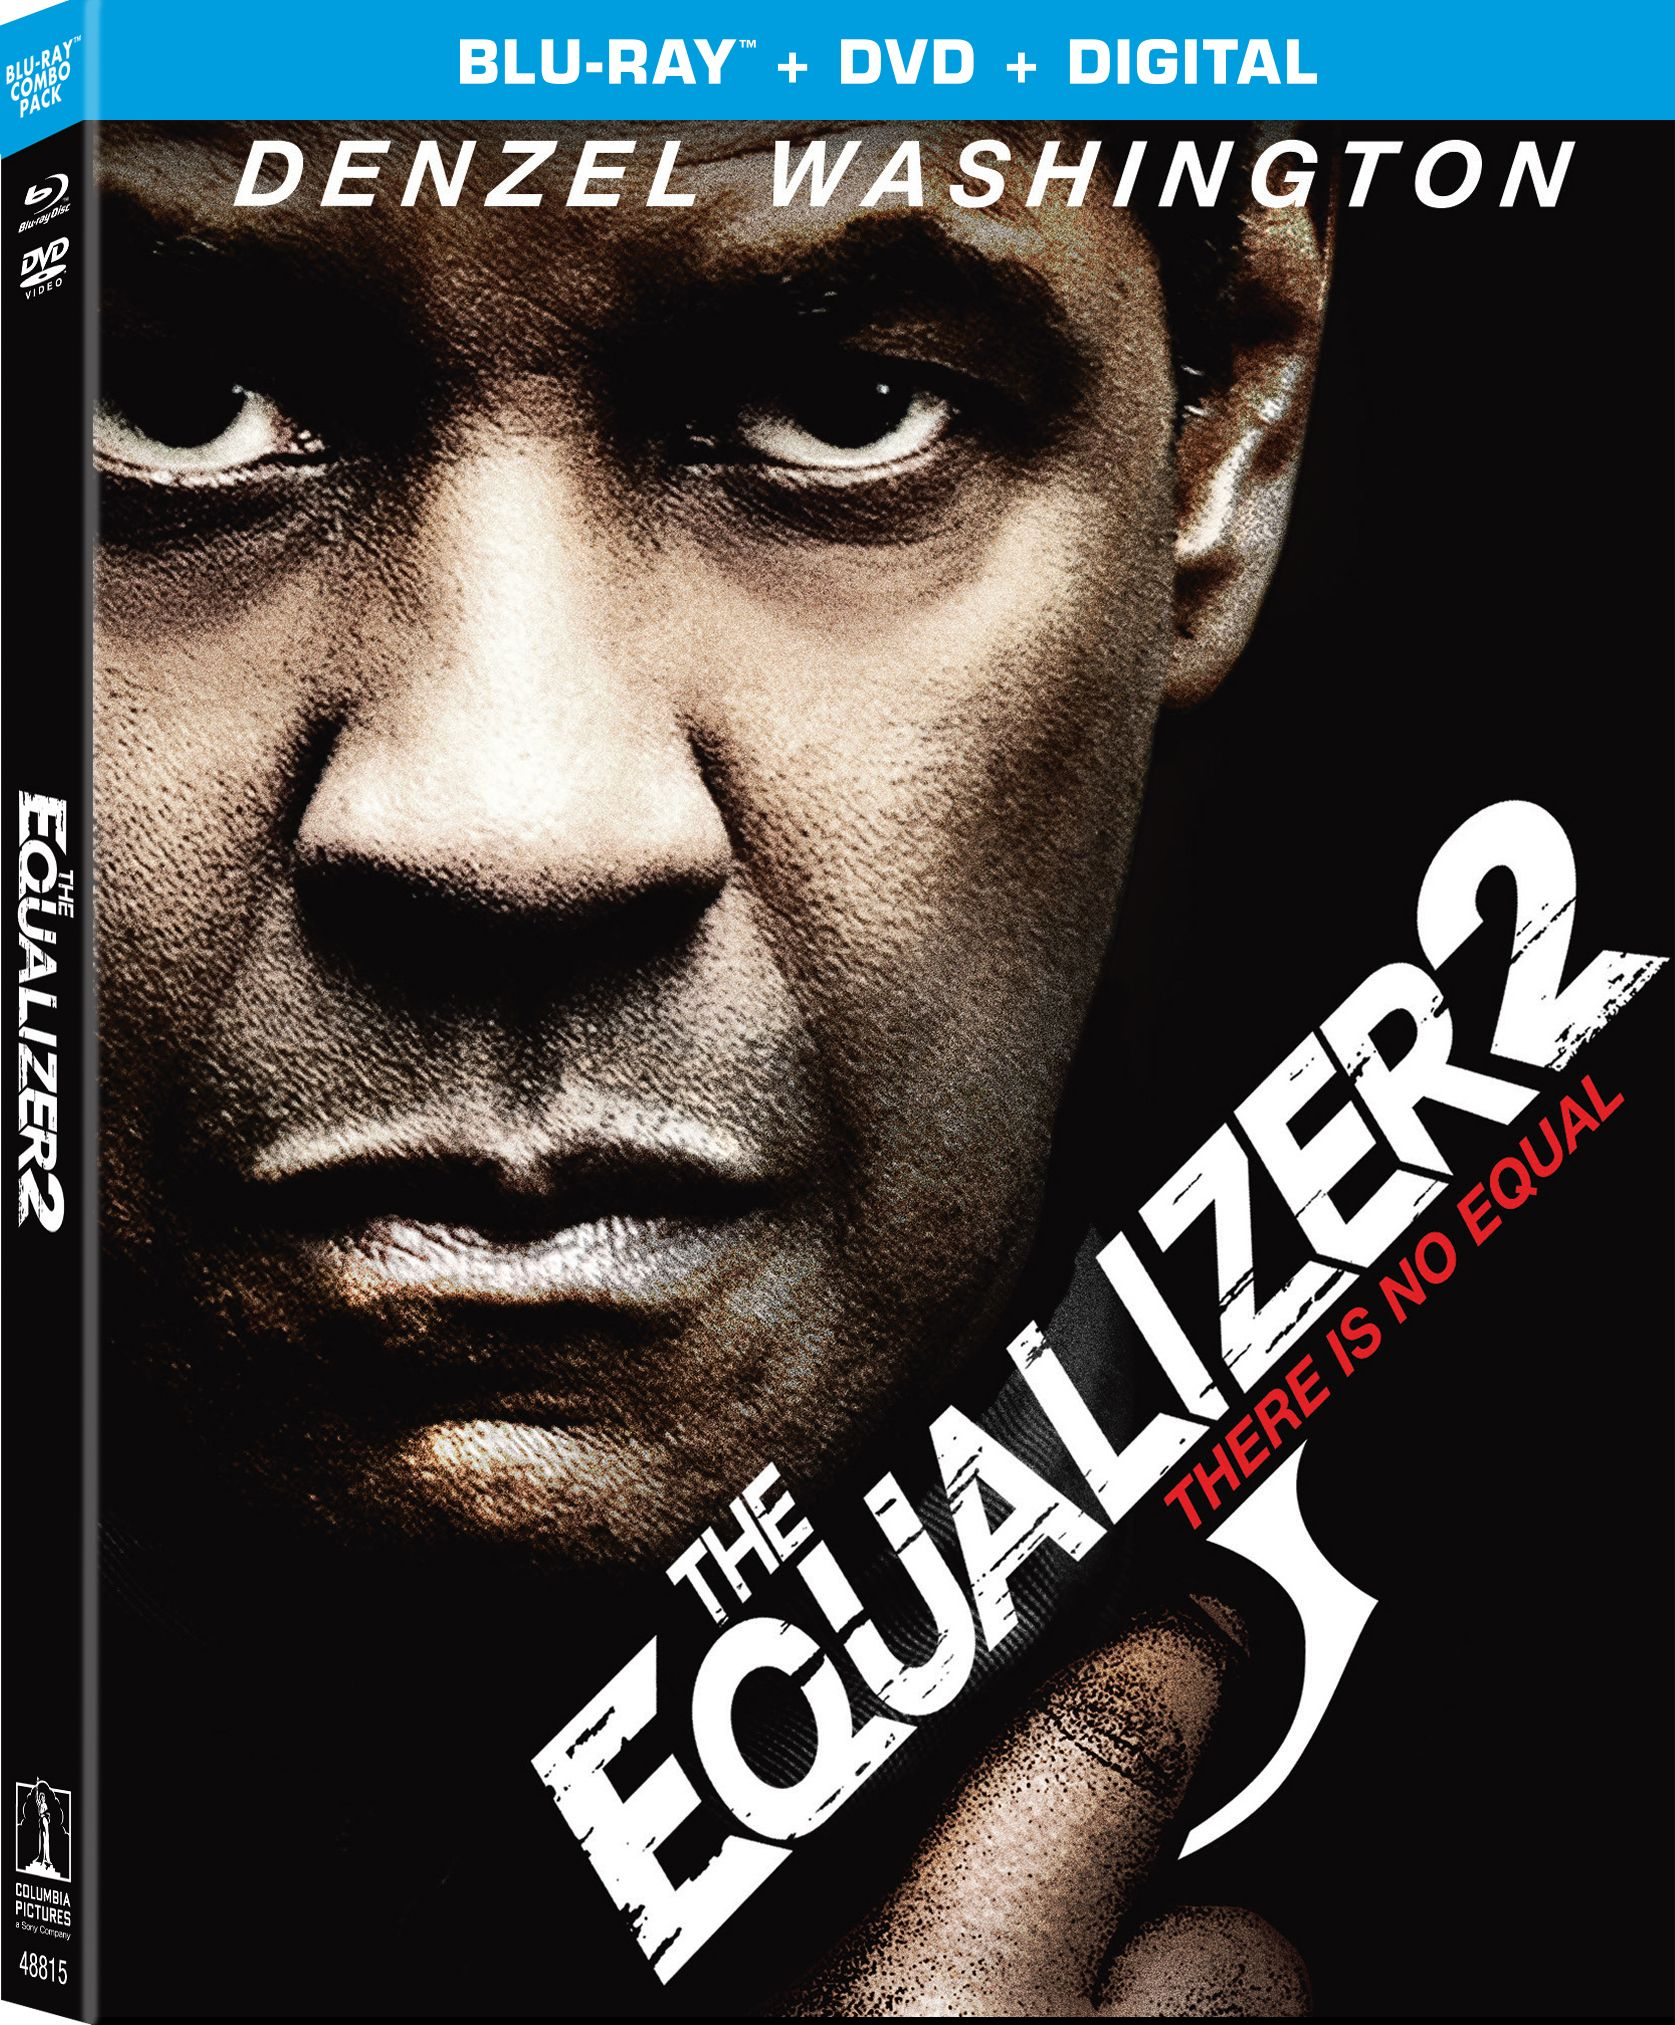 The Equalizer 2 Blu-ray Includes 11 Deleted Scenes and